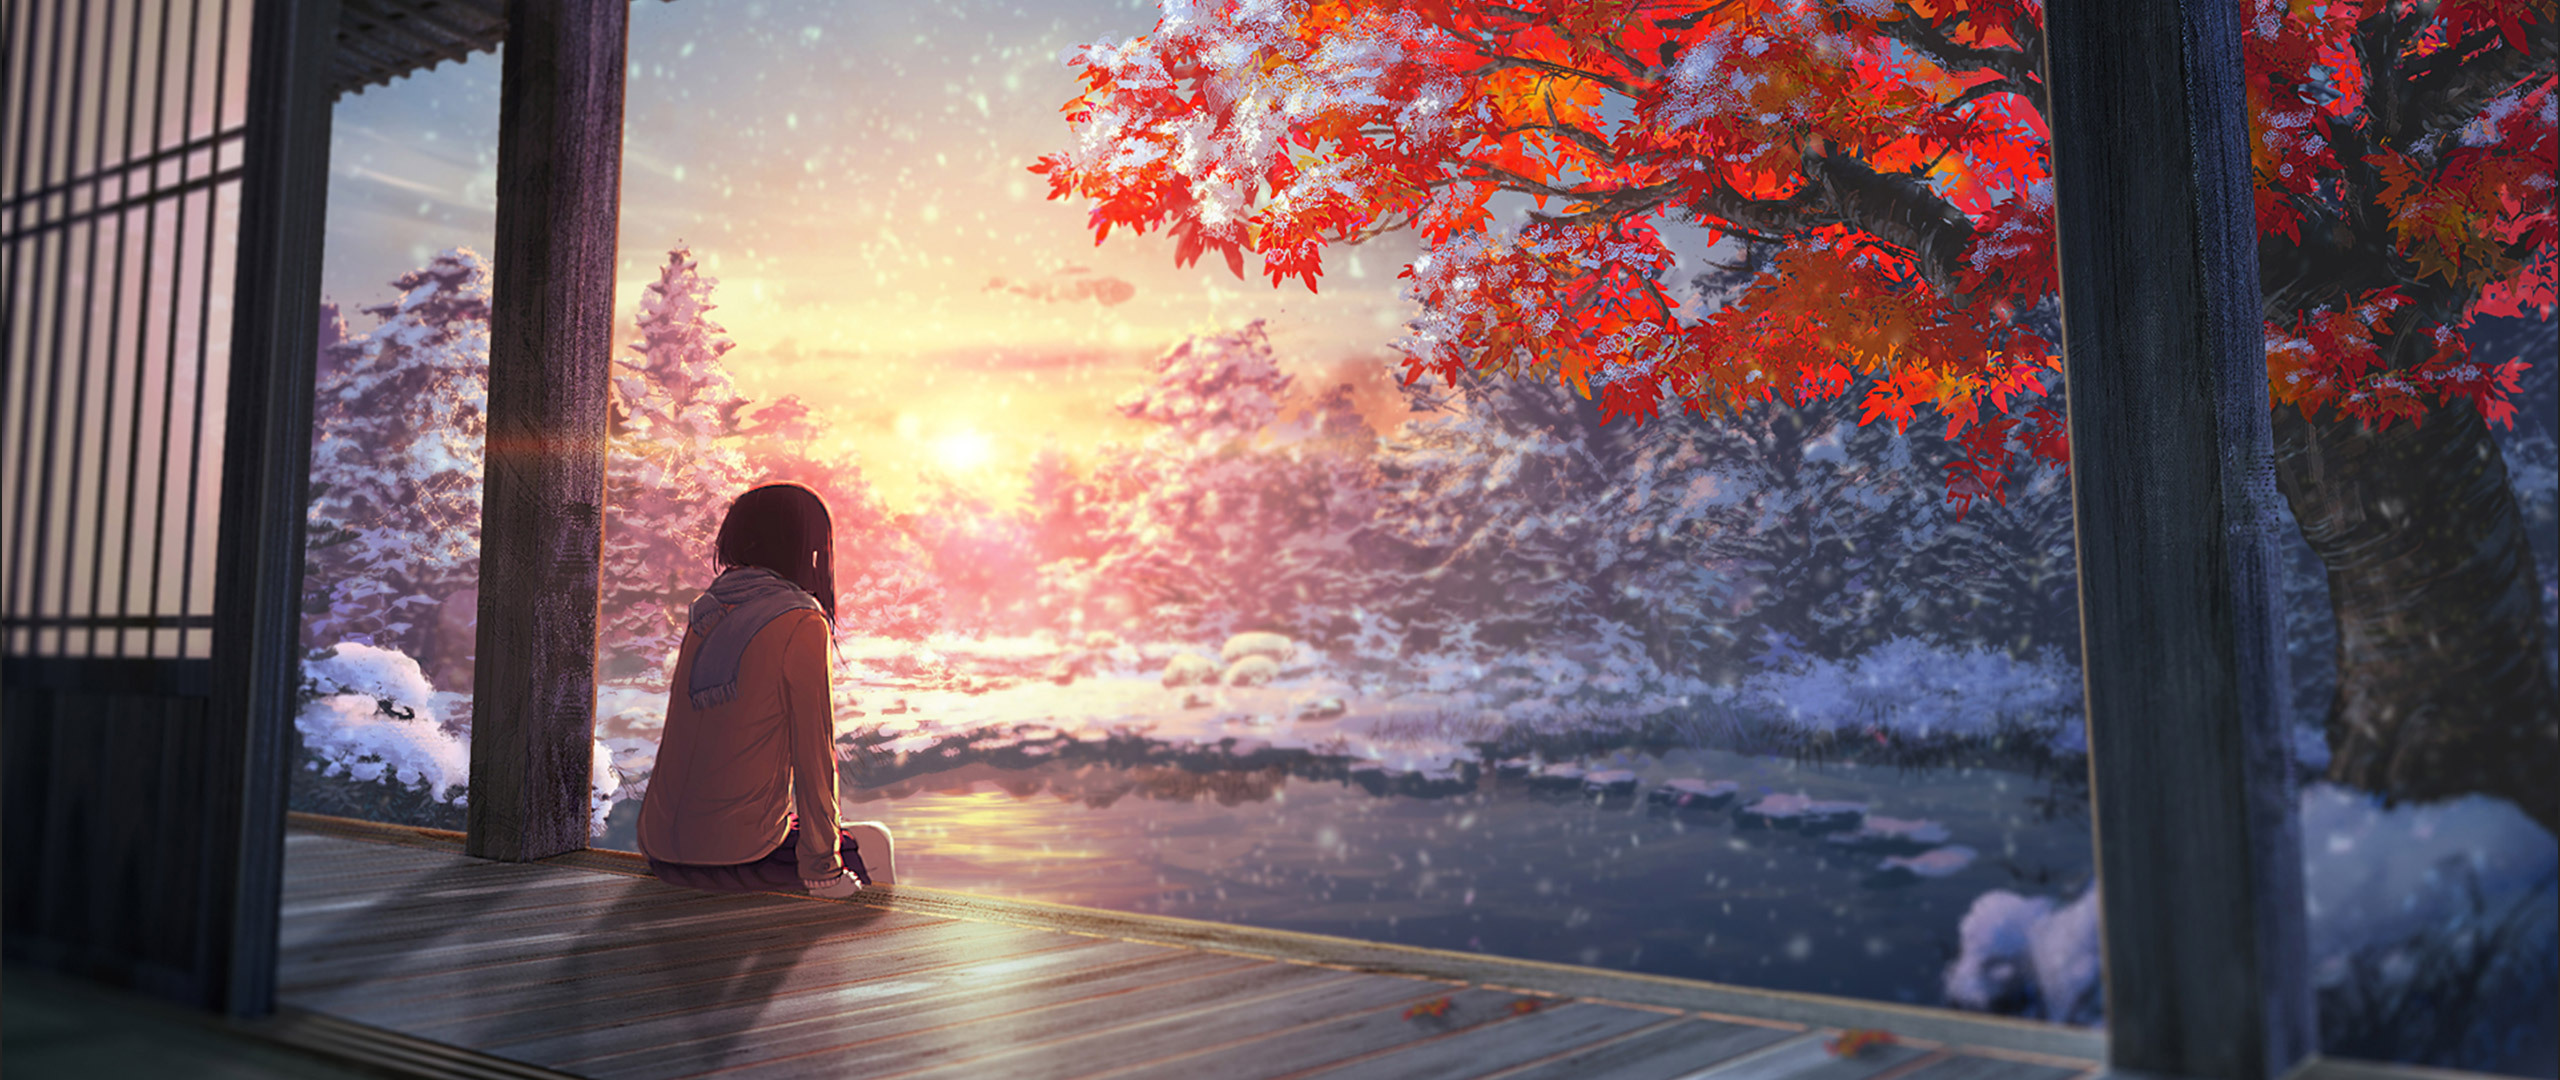 2560x1080 Nightcore Anime Girl 2560x1080 Resolution HD 4k Wallpapers, Images, Backgrounds ...